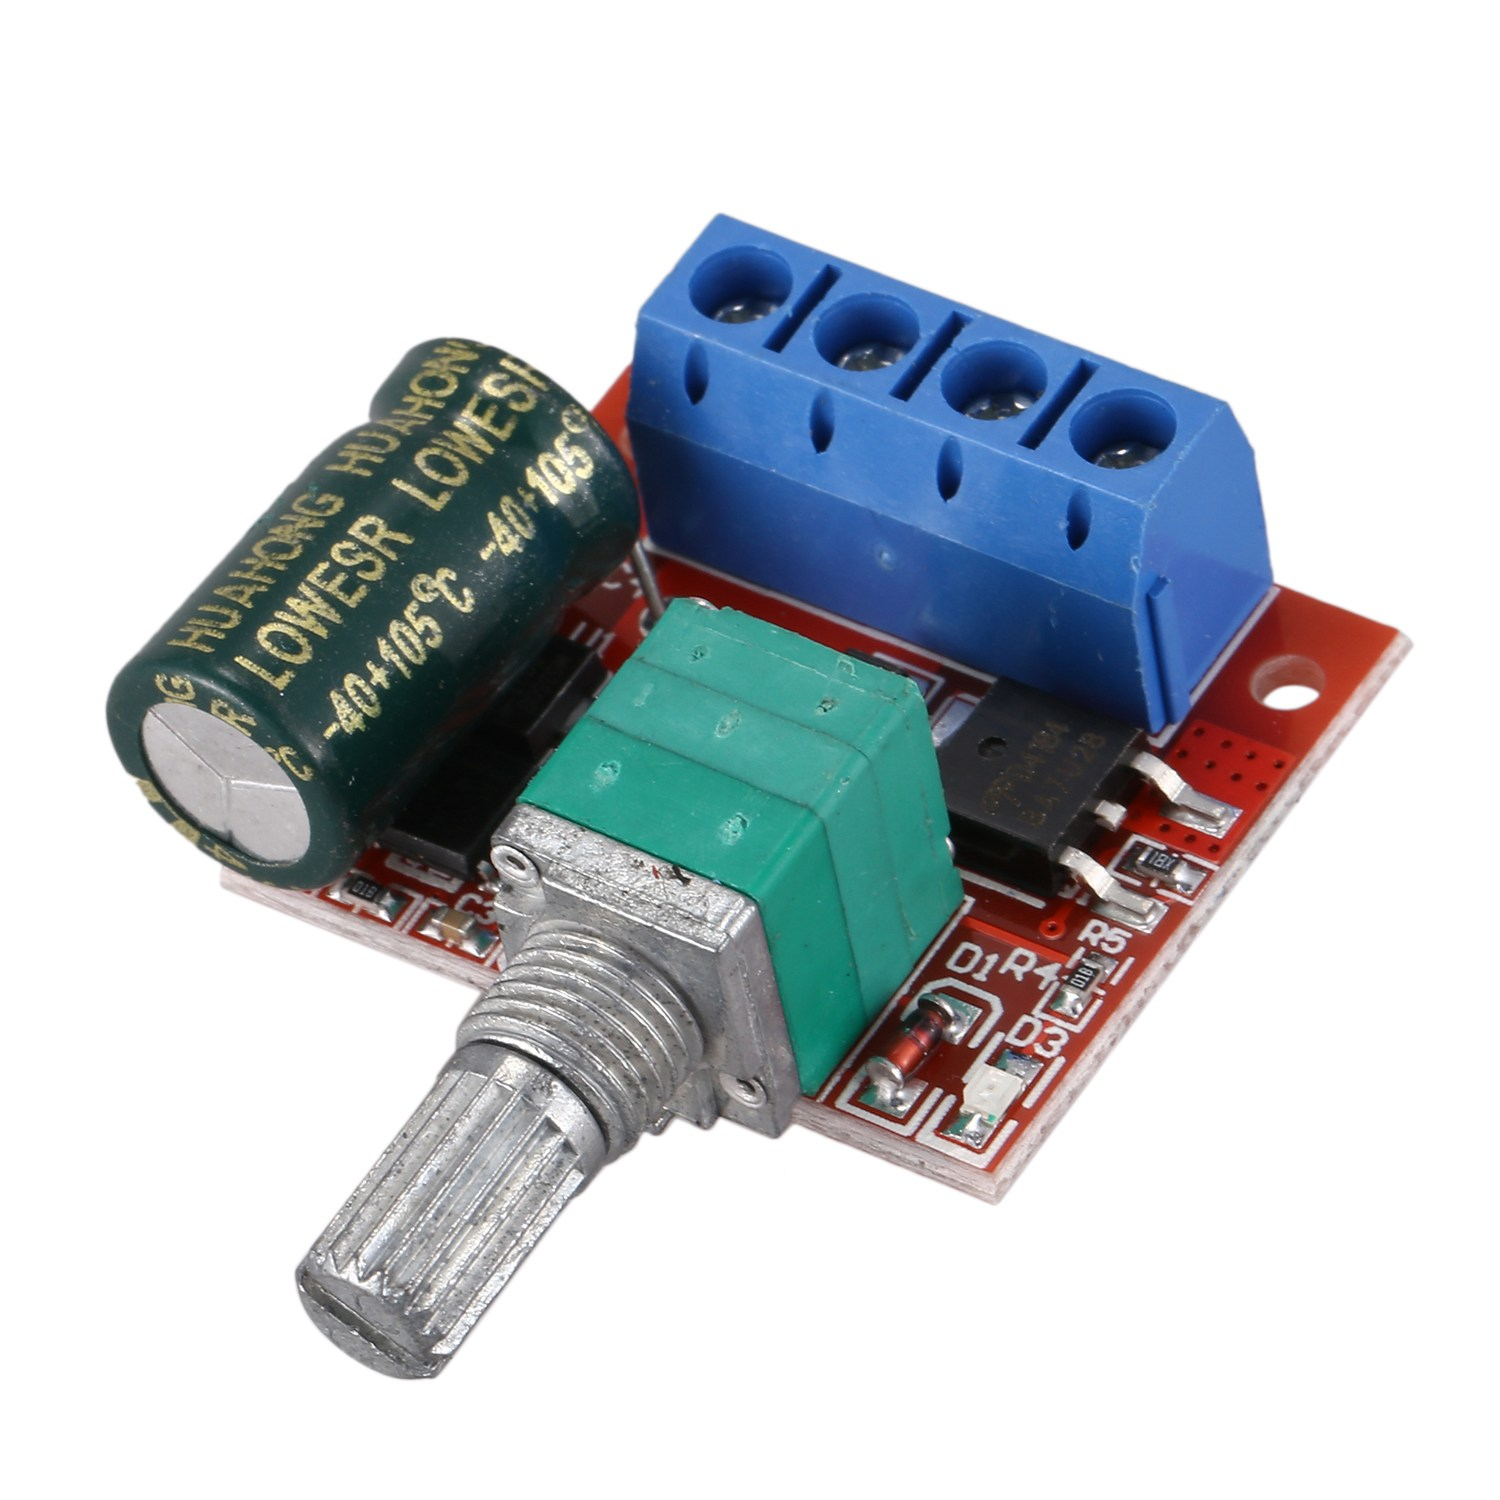 1pcs DC5-35V 5A PWM DC Motor Speed Controller LED Light Dimmer Switch 10KHz Controller Volt Regulator Electrical DC Motor Boards